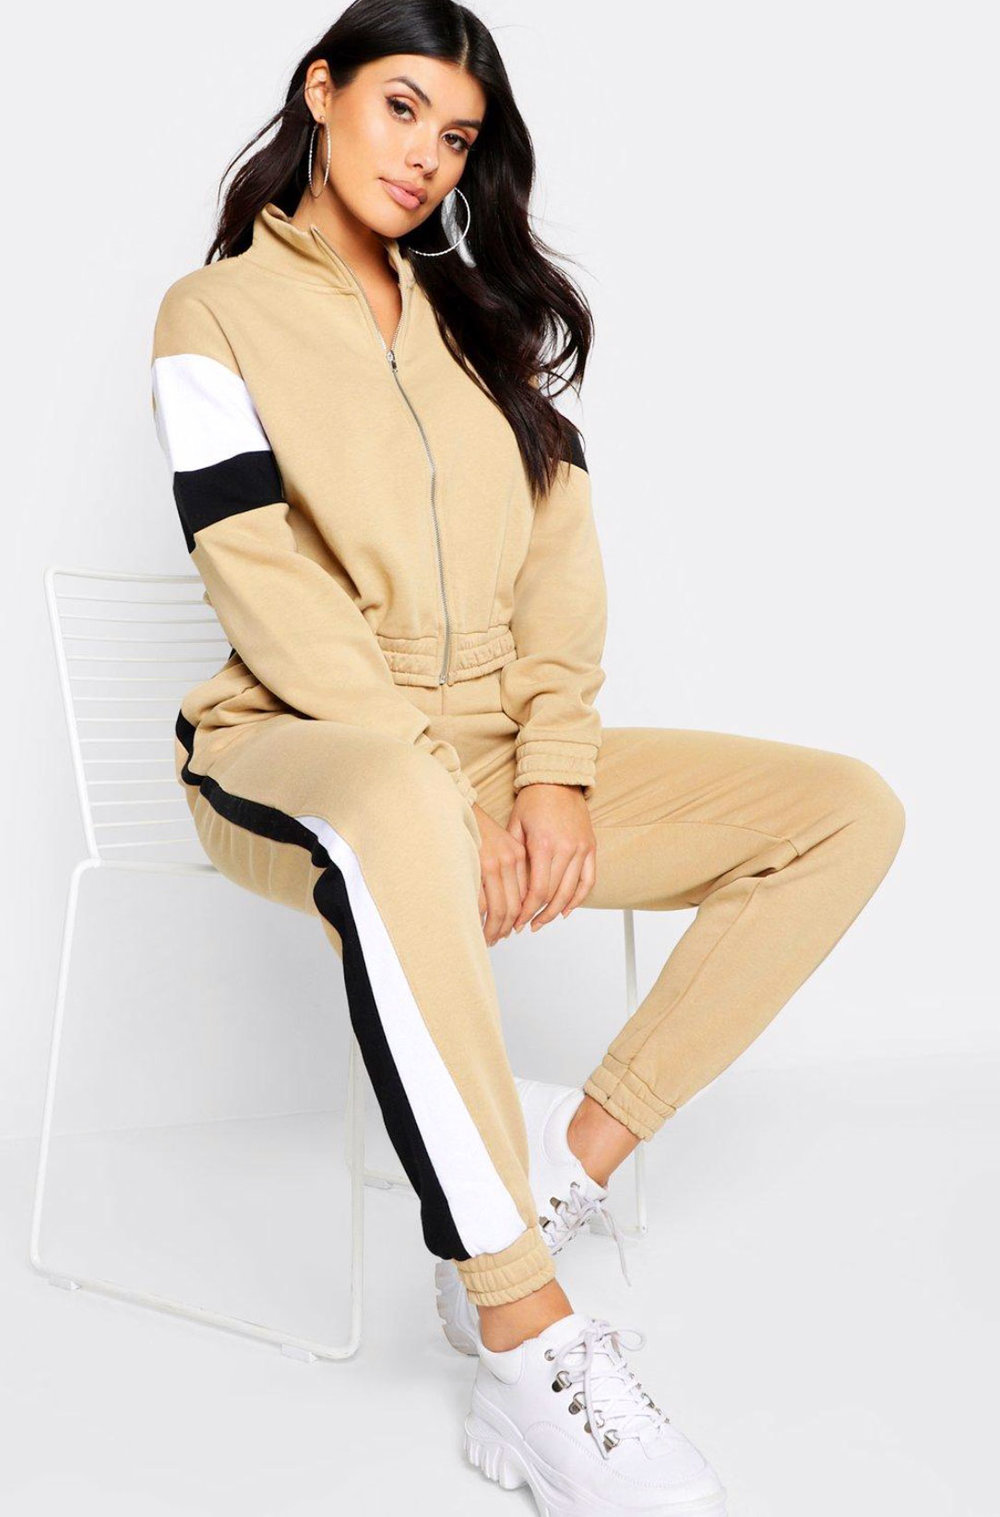 Boo Hoo Neutral Track Suit  $32